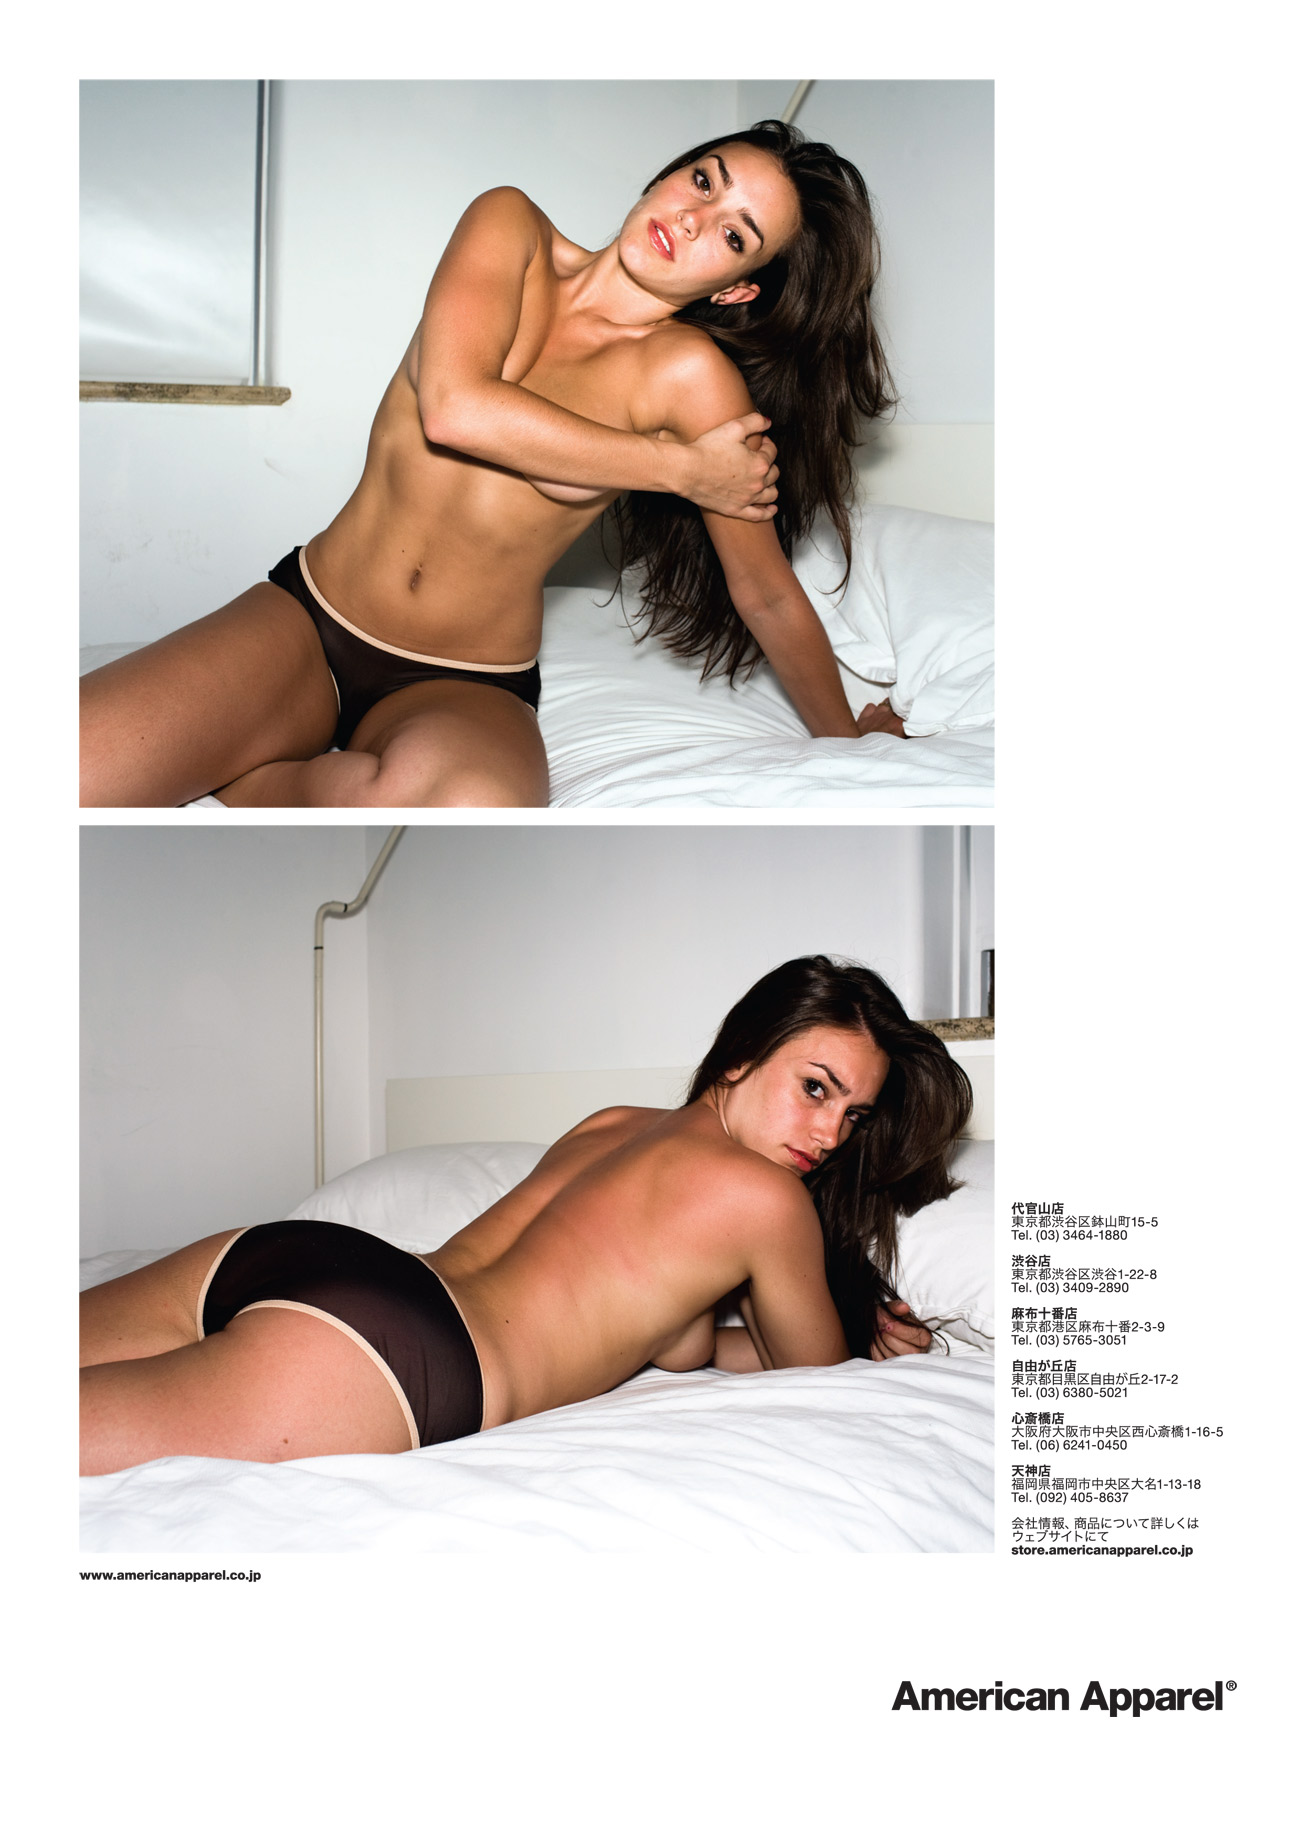 jessica summers playboy pictures